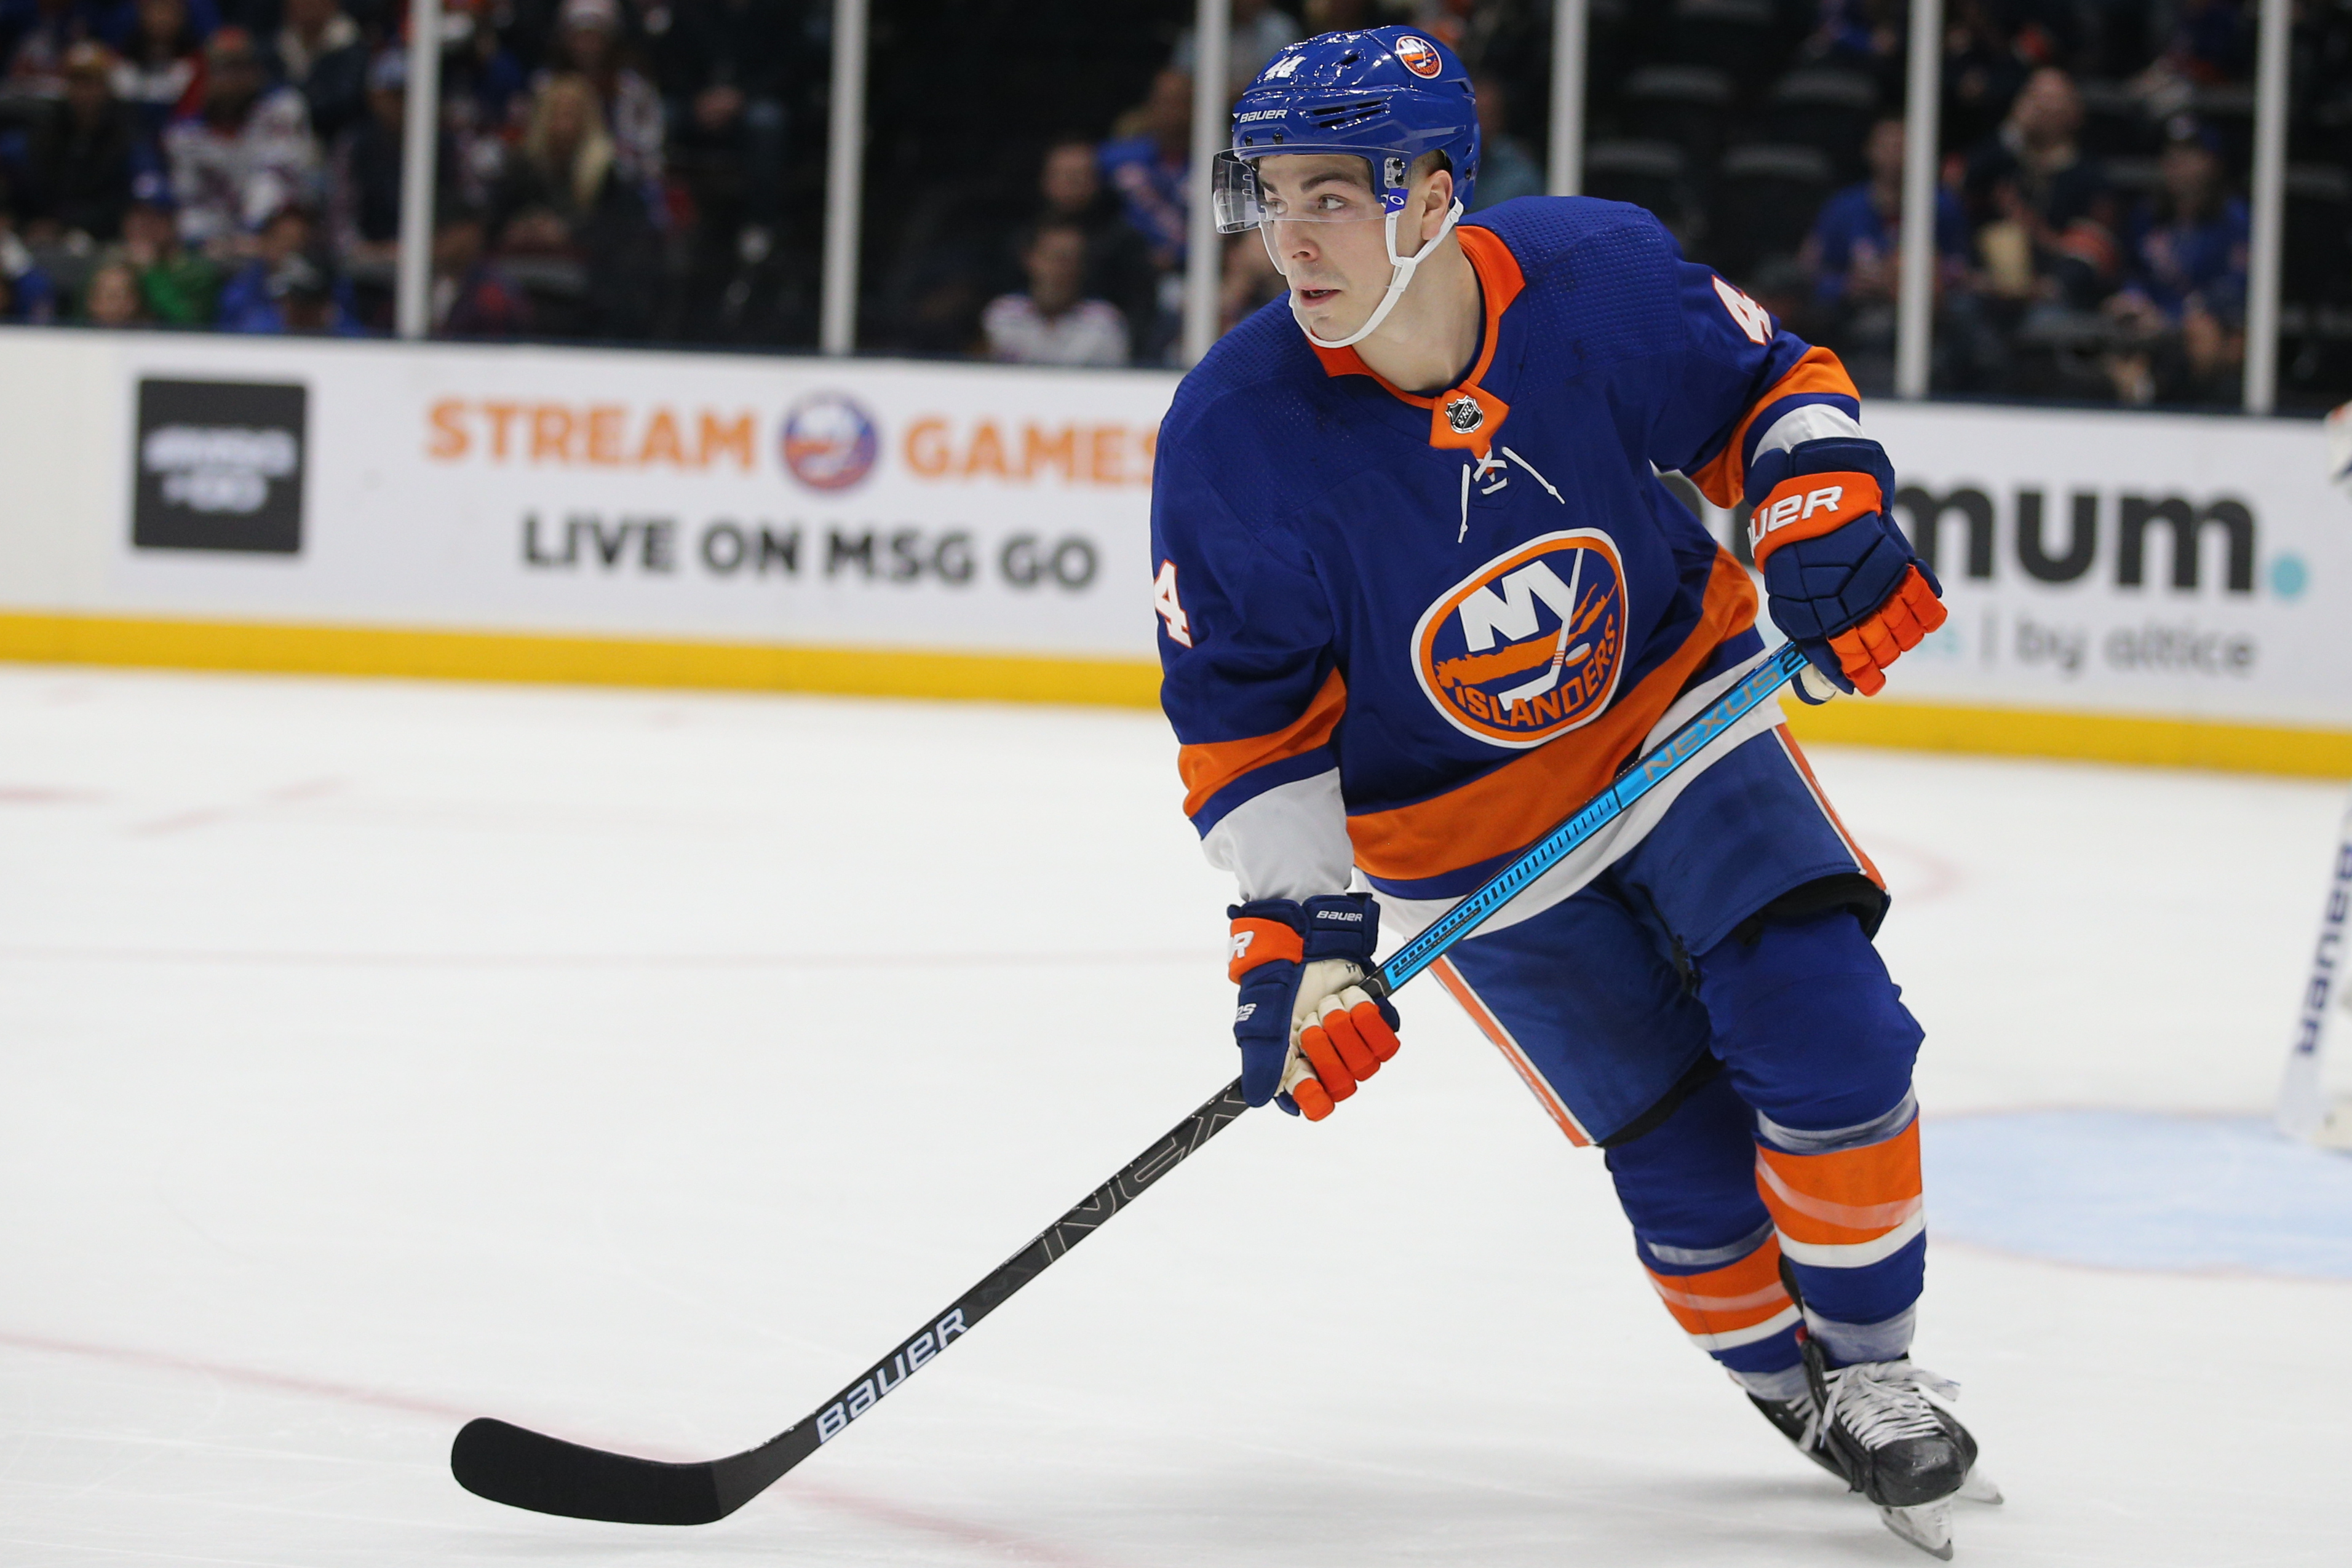 Feb 25, 2020; Uniondale, New York, USA; New York Islanders center Jean-Gabriel Pageau (44) skates against the New York Rangers during the first period at Barclays Center. Mandatory Credit: Brad Penner-USA TODAY Sports